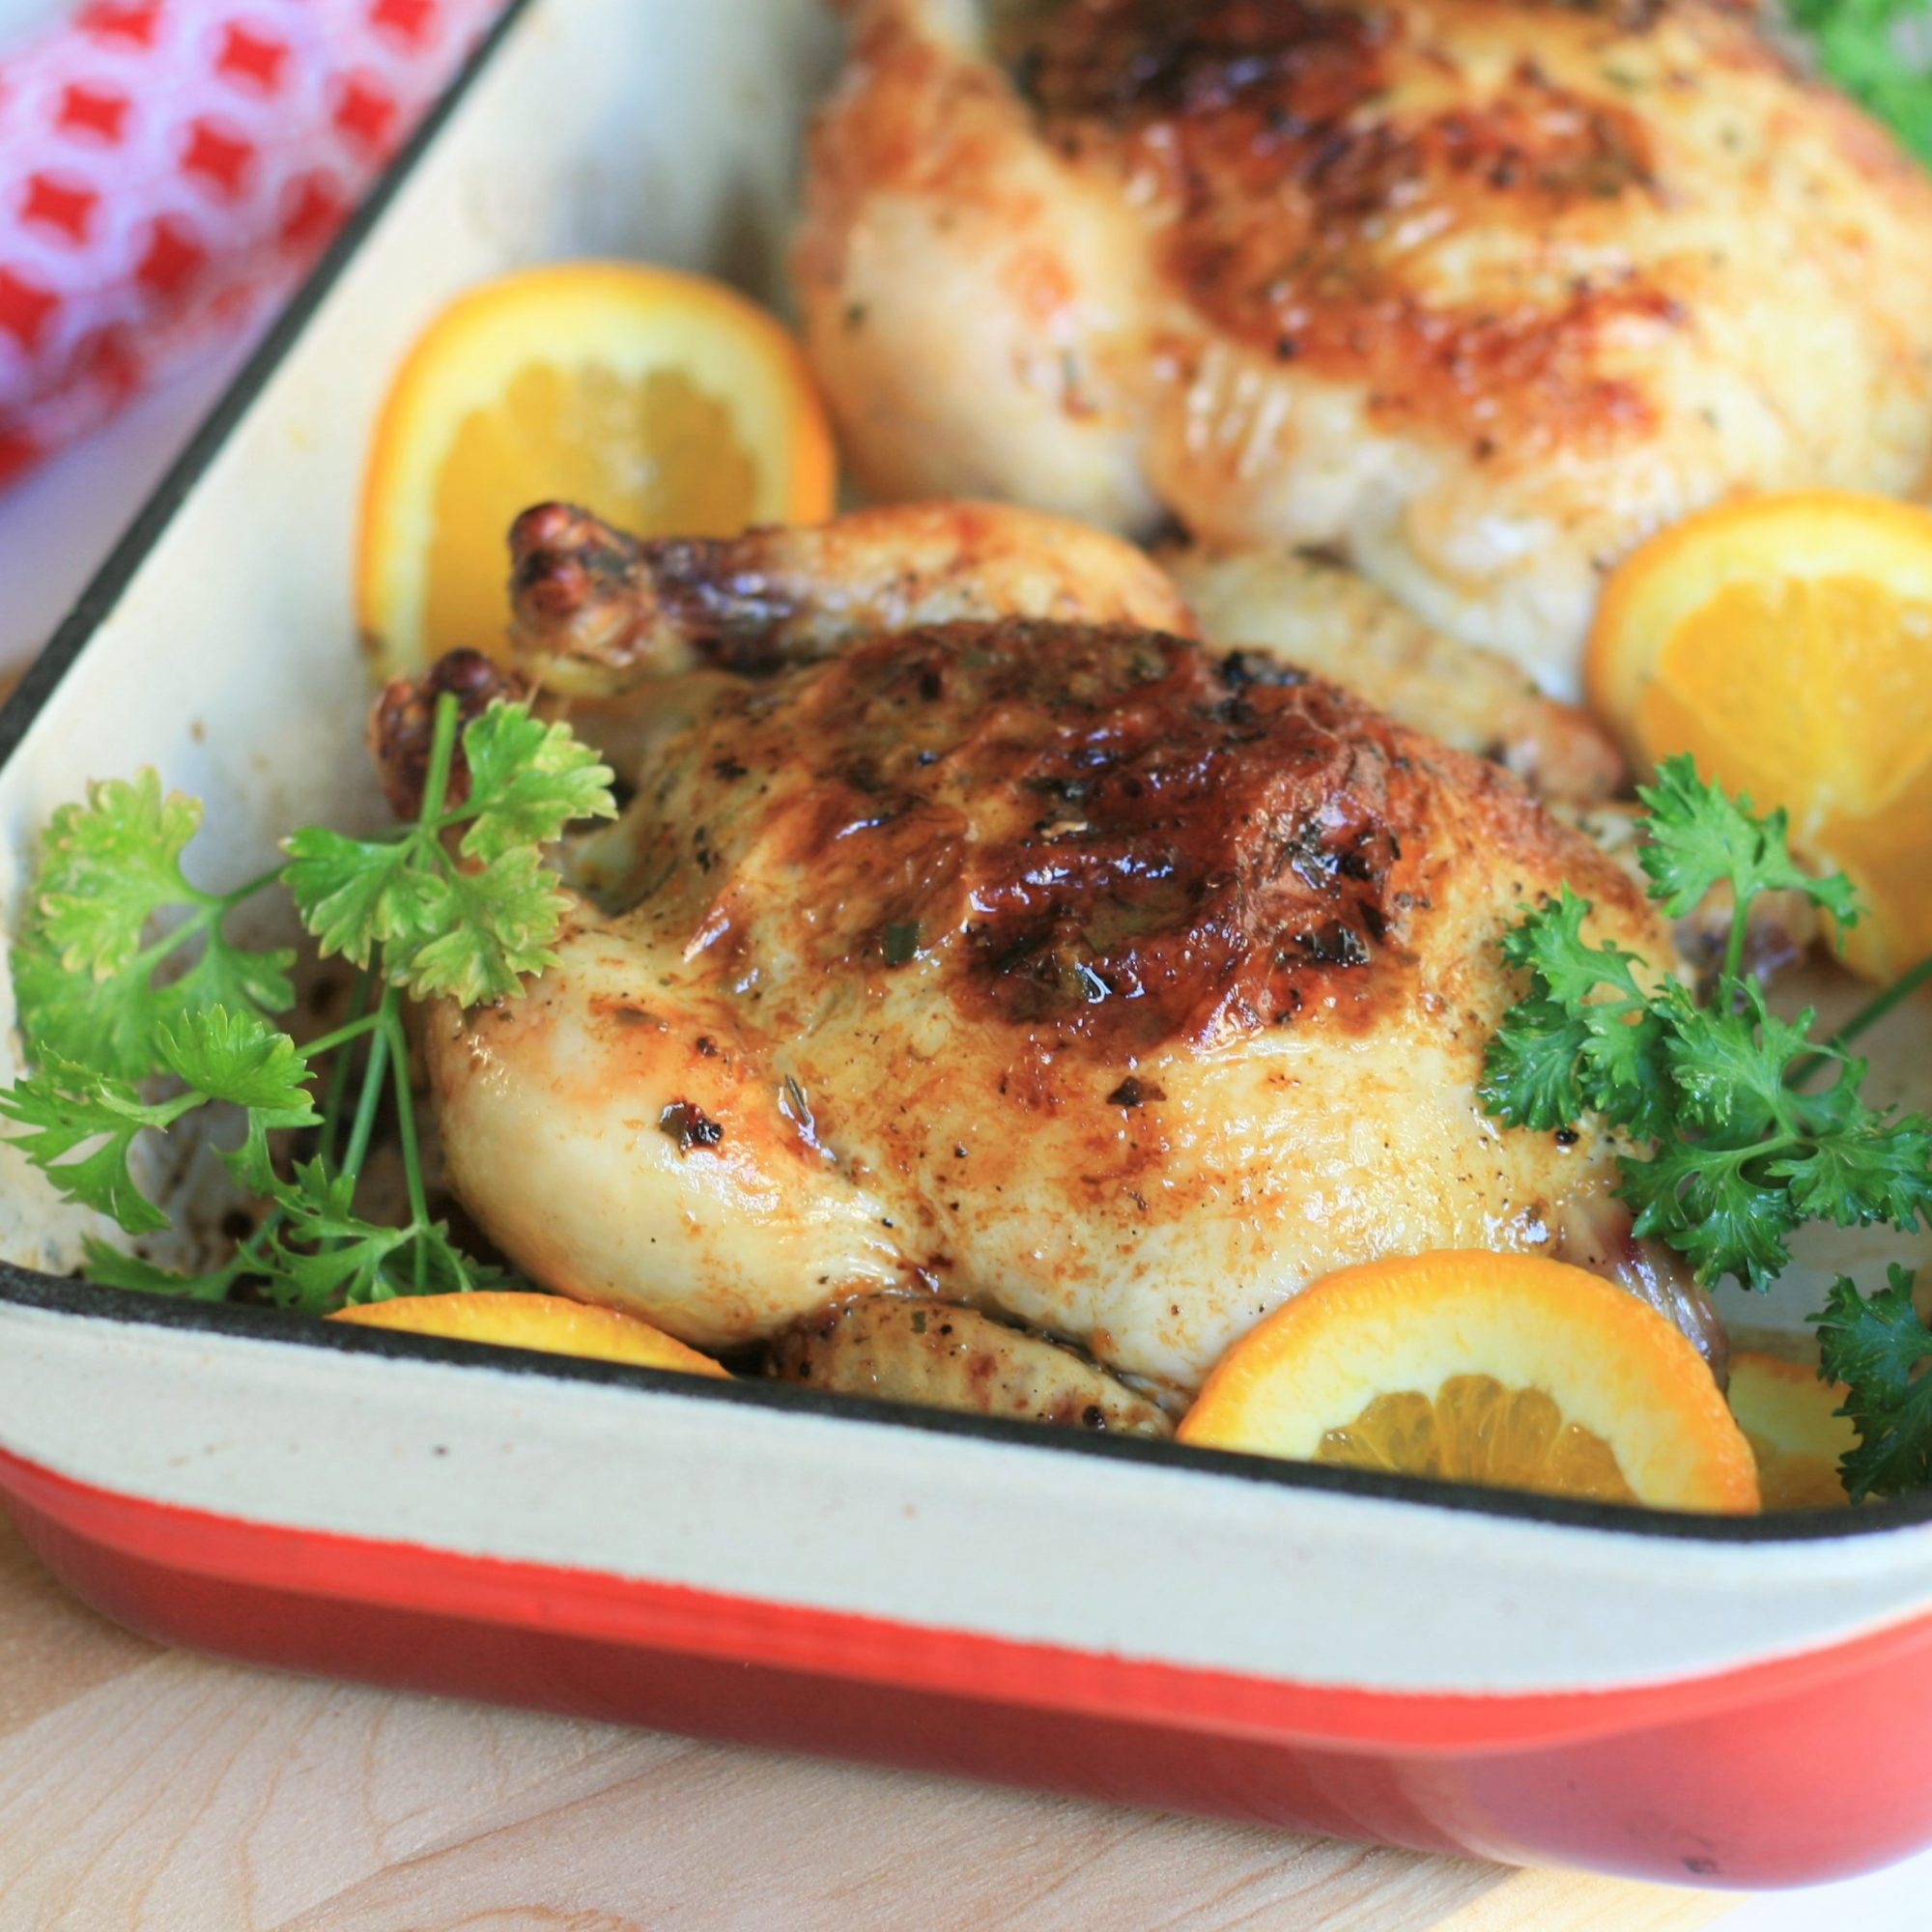 a red roasting pan with roasted cornish hens